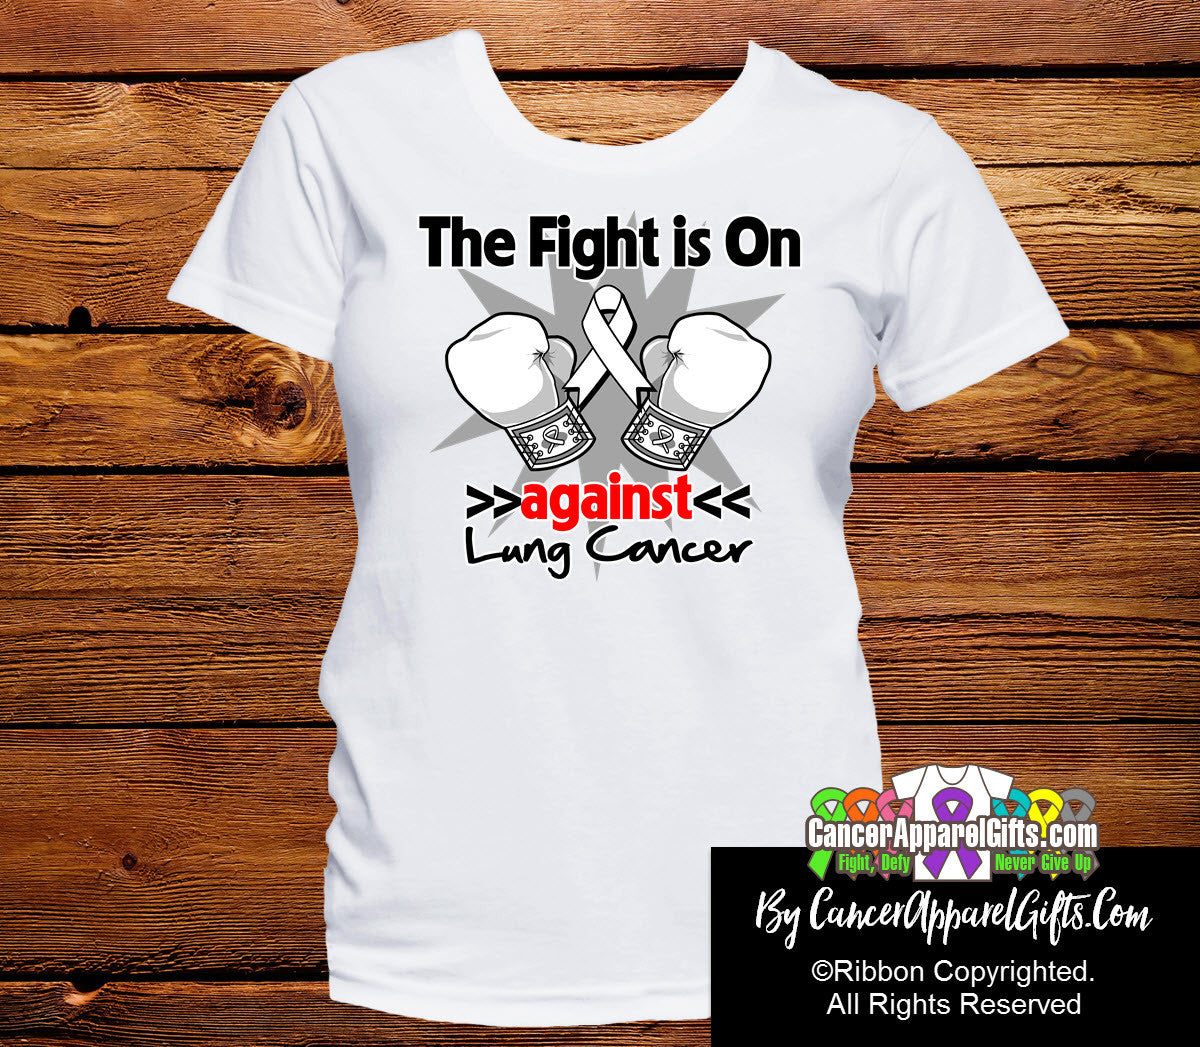 Lung Cancer The Fight is On Ladies Shirts